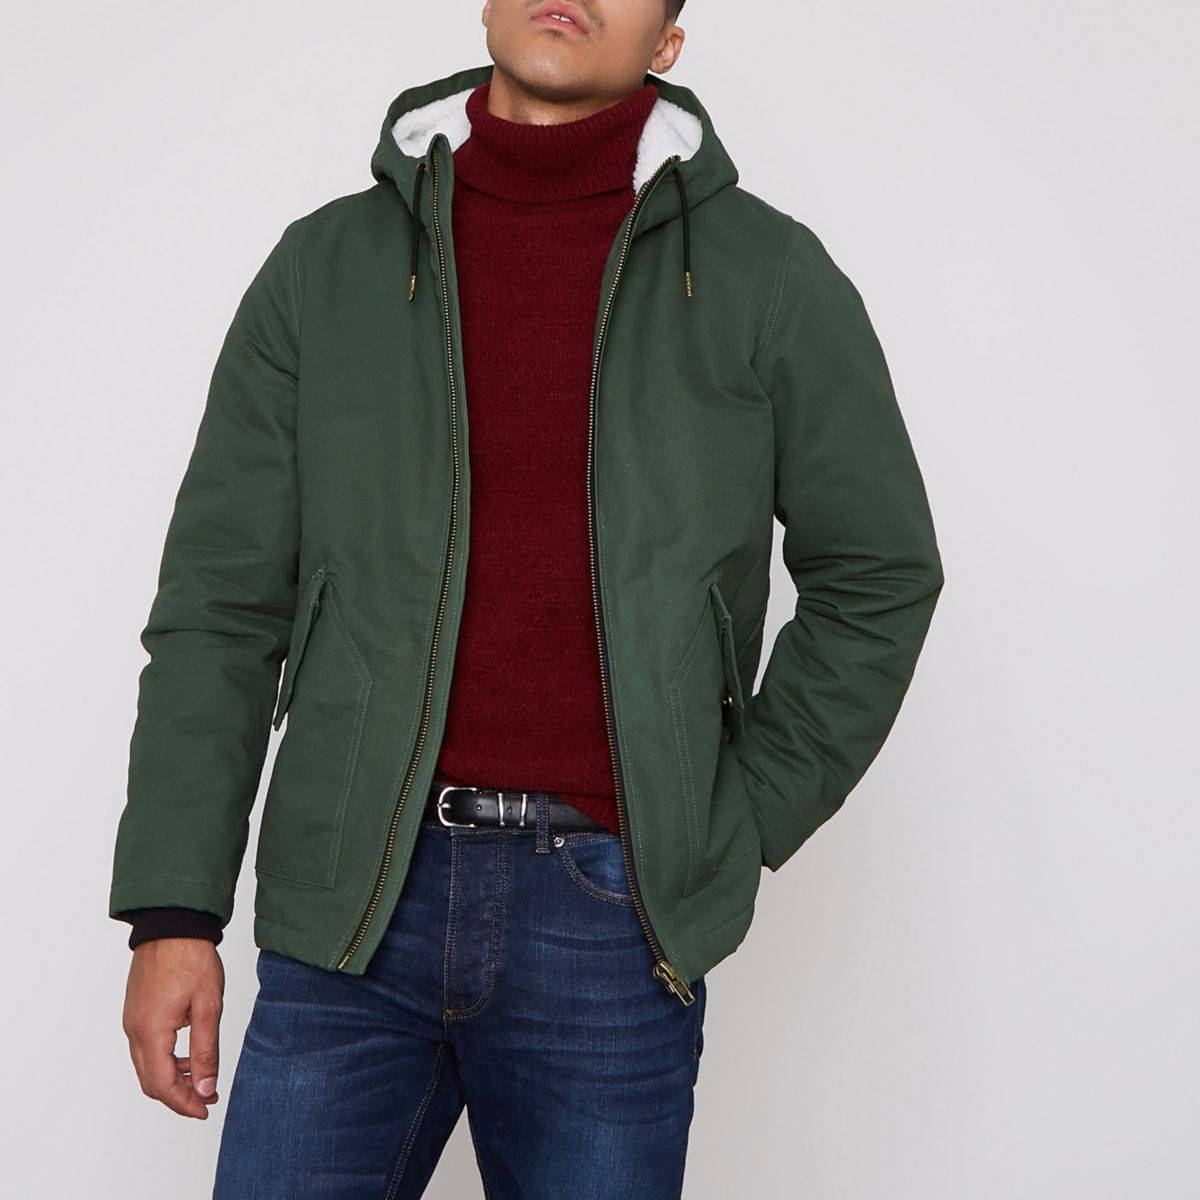 Green borg lined hooded jacket